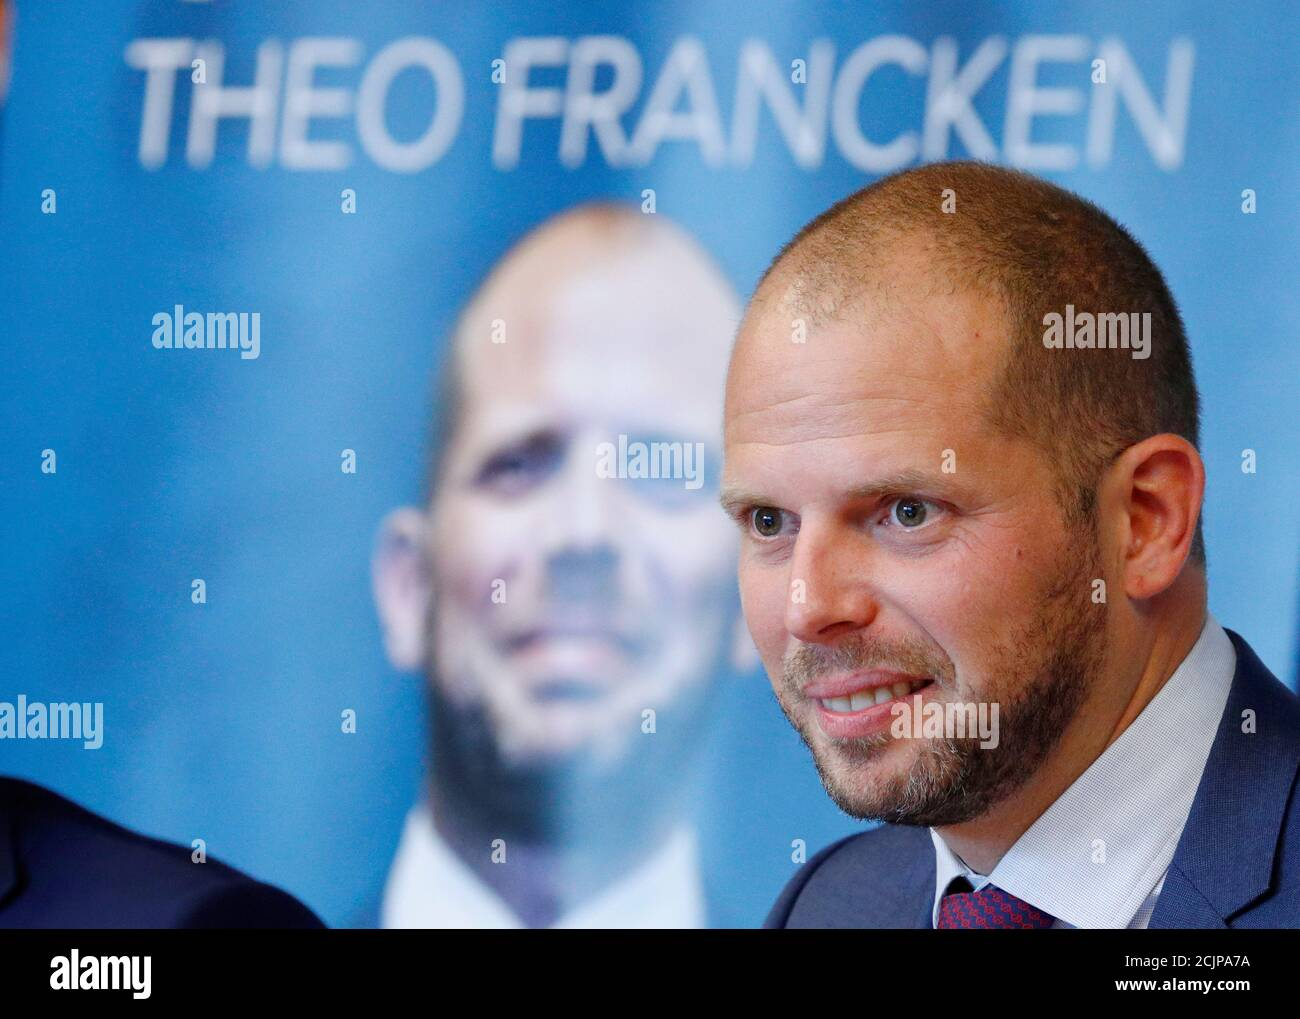 Belgium S Asylum And Migration State Secretary Theo Francken Presents A Book Continent Without Borders At The European Parliament In Brussels Belgium September 28 2018 Reuters Francois Lenoir Stock Photo Alamy